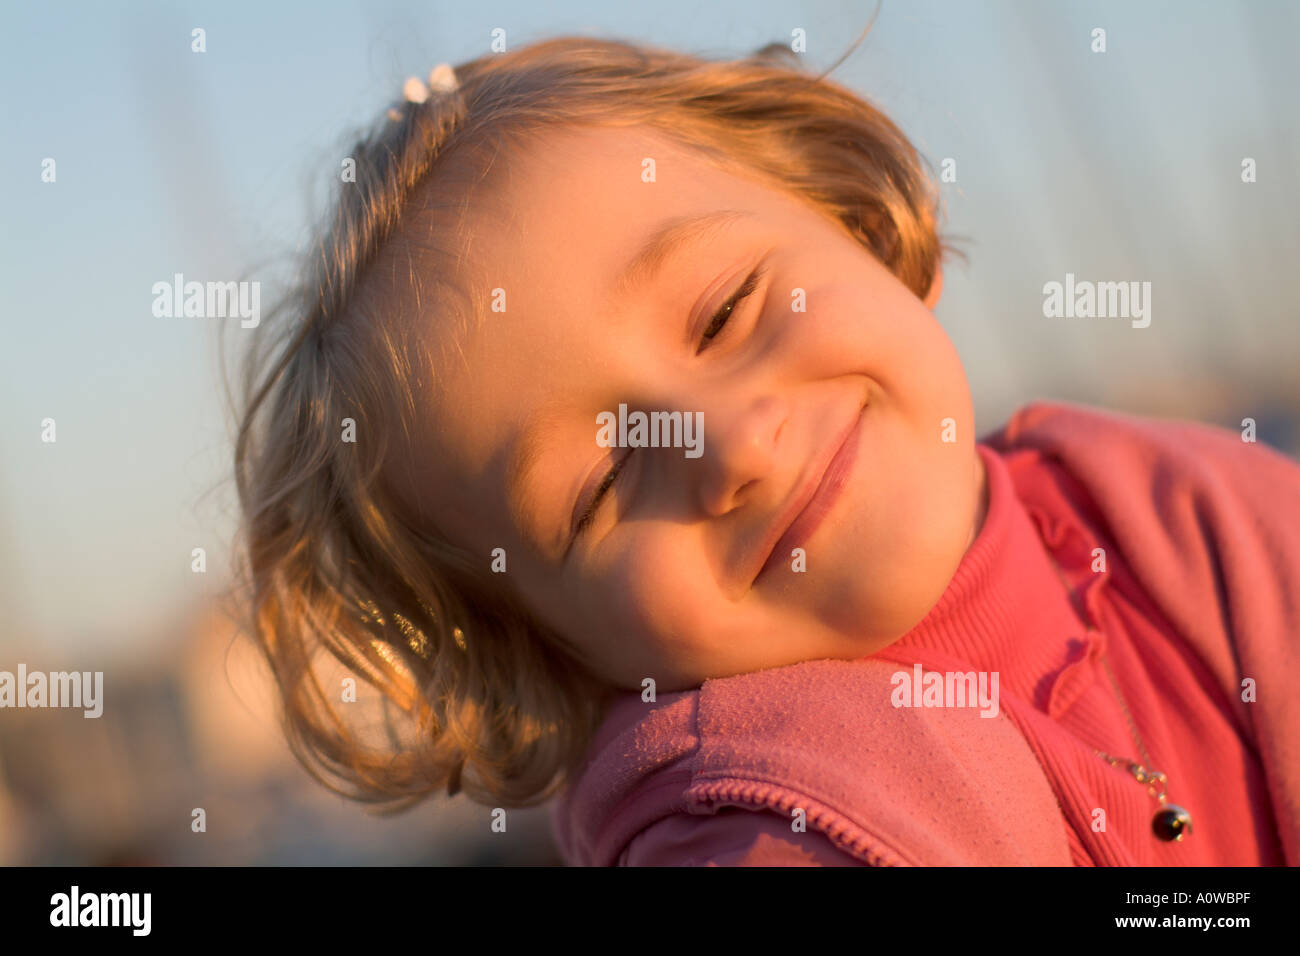 Portrait of a smiling little girl at sunset, France. Stock Photo